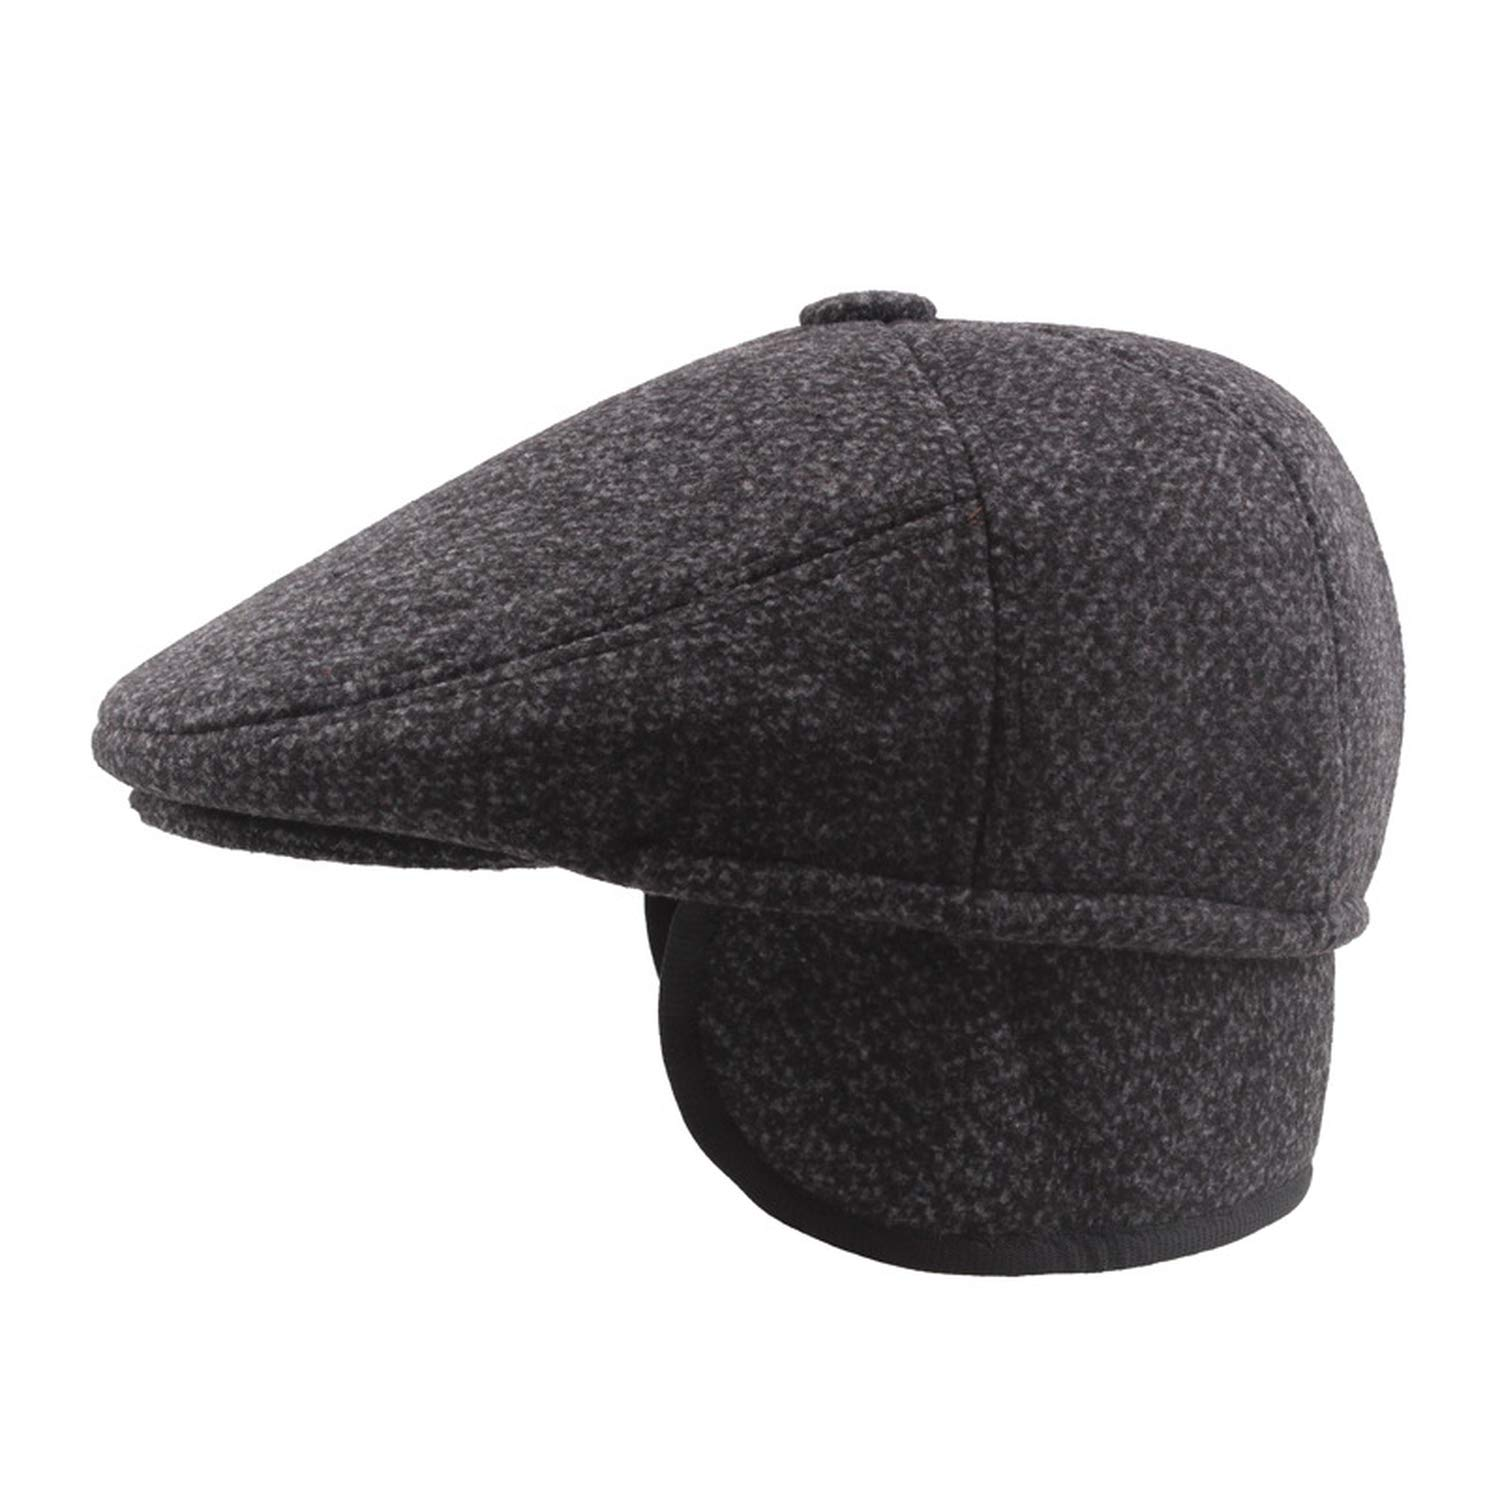 ANDERDM Autumn Newsboy Caps Mens Middle Aged Old Age Beret Cabbie Ivy Flat Nylon Dad Hats for Men Caps